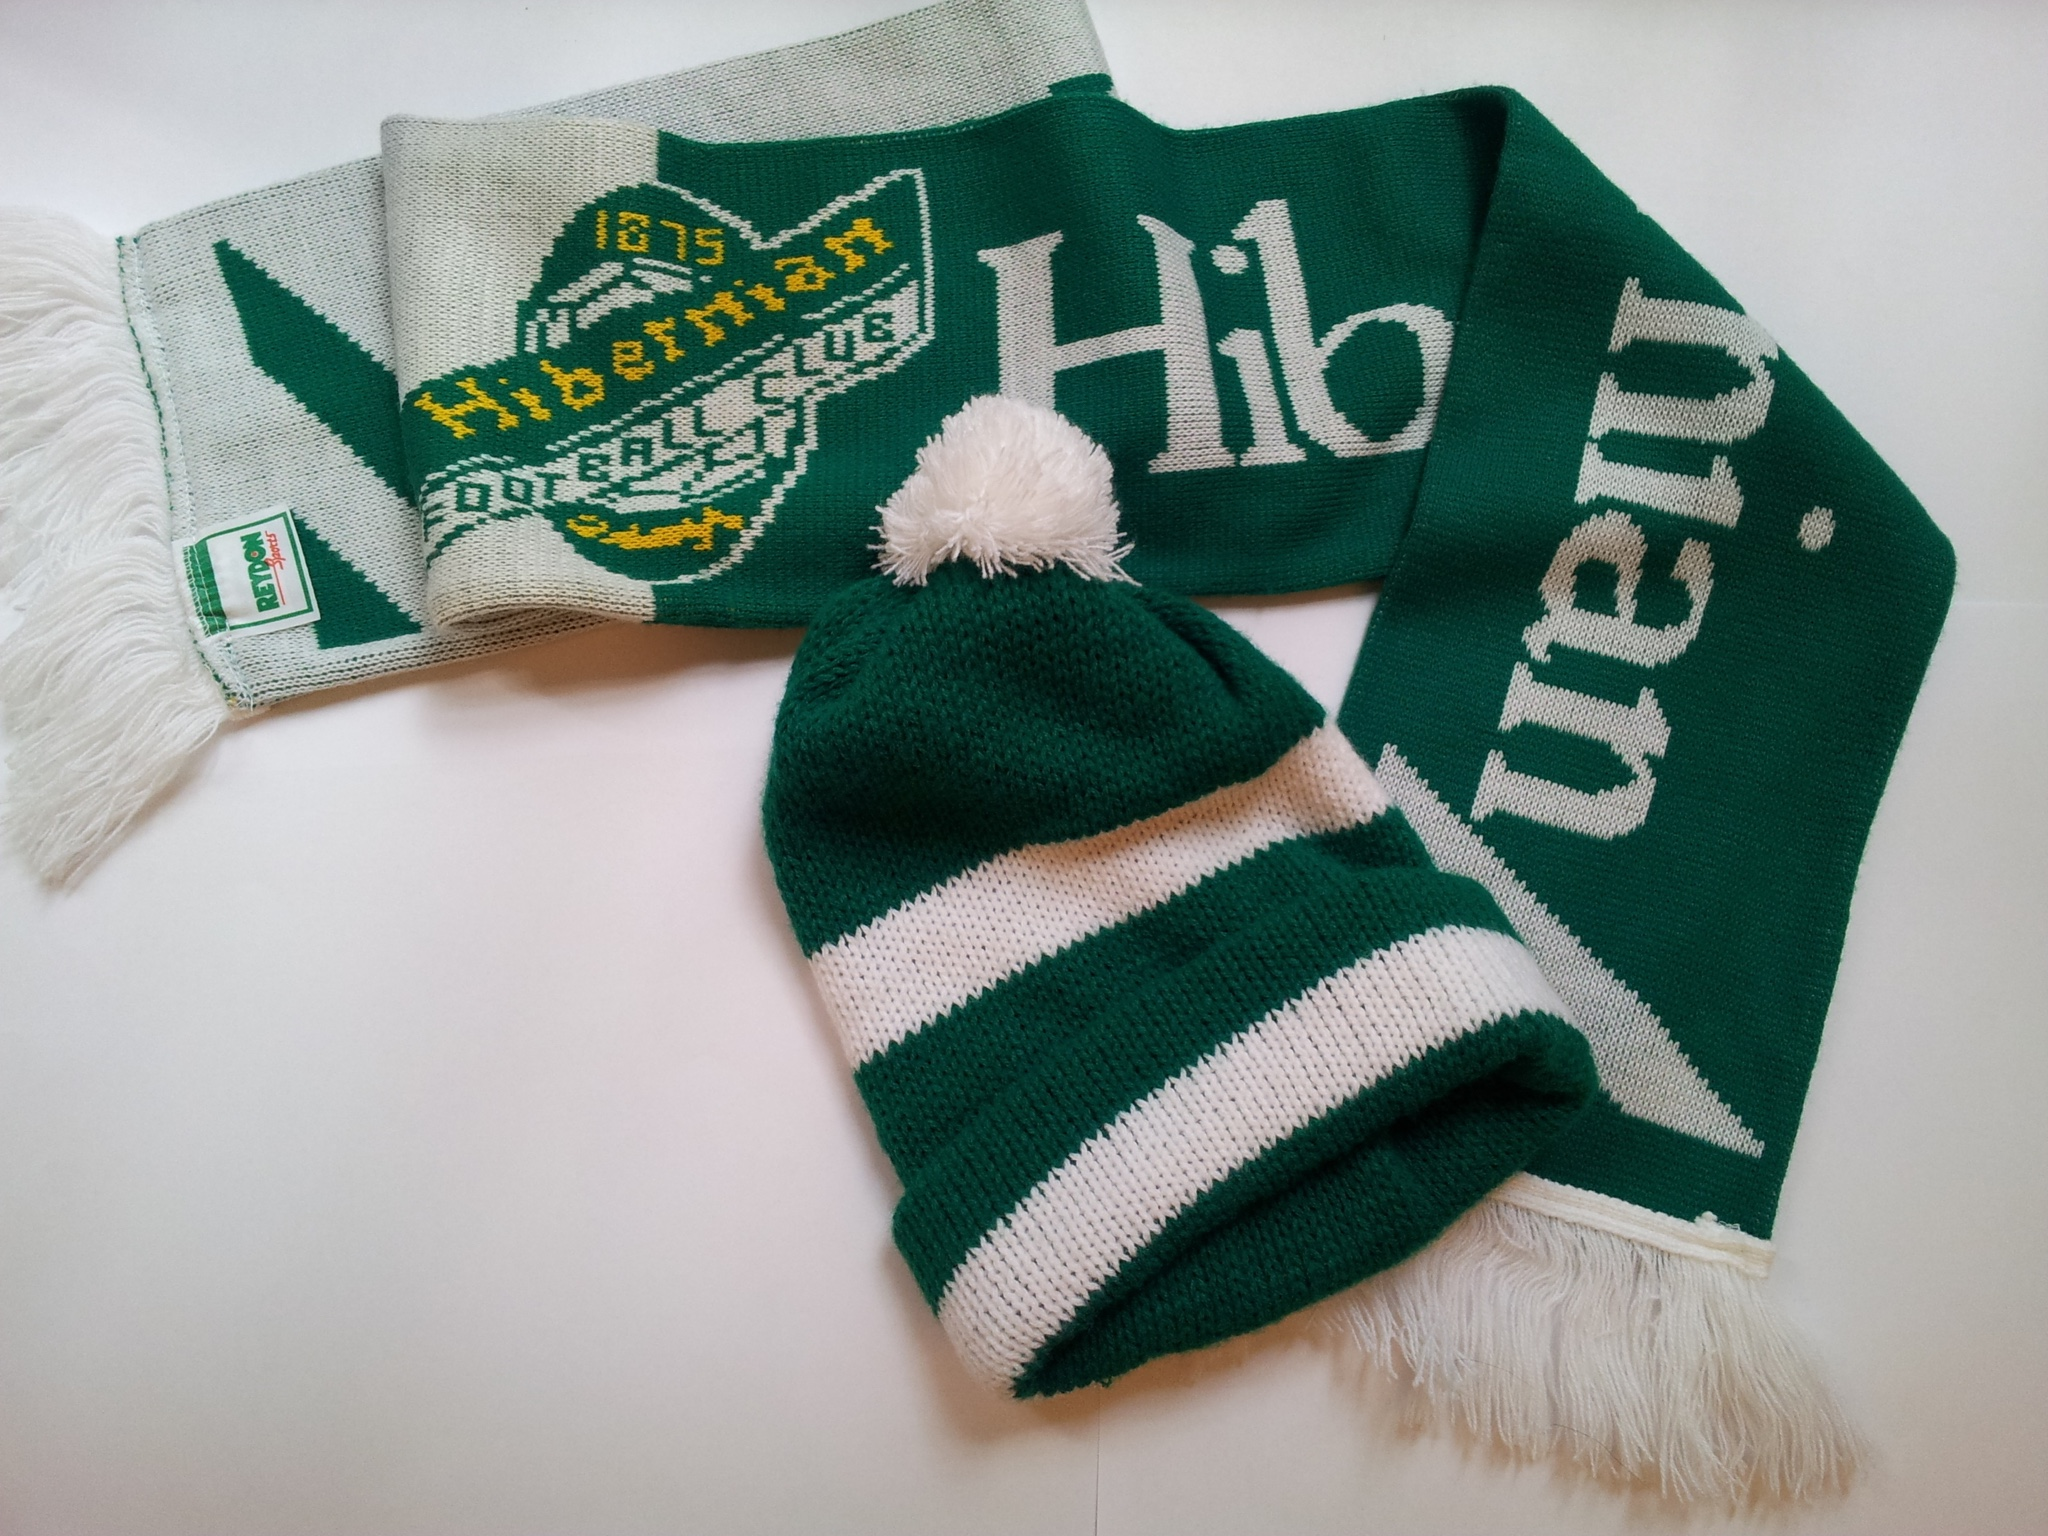 Hibernian F. C. supporter's hat and scarf